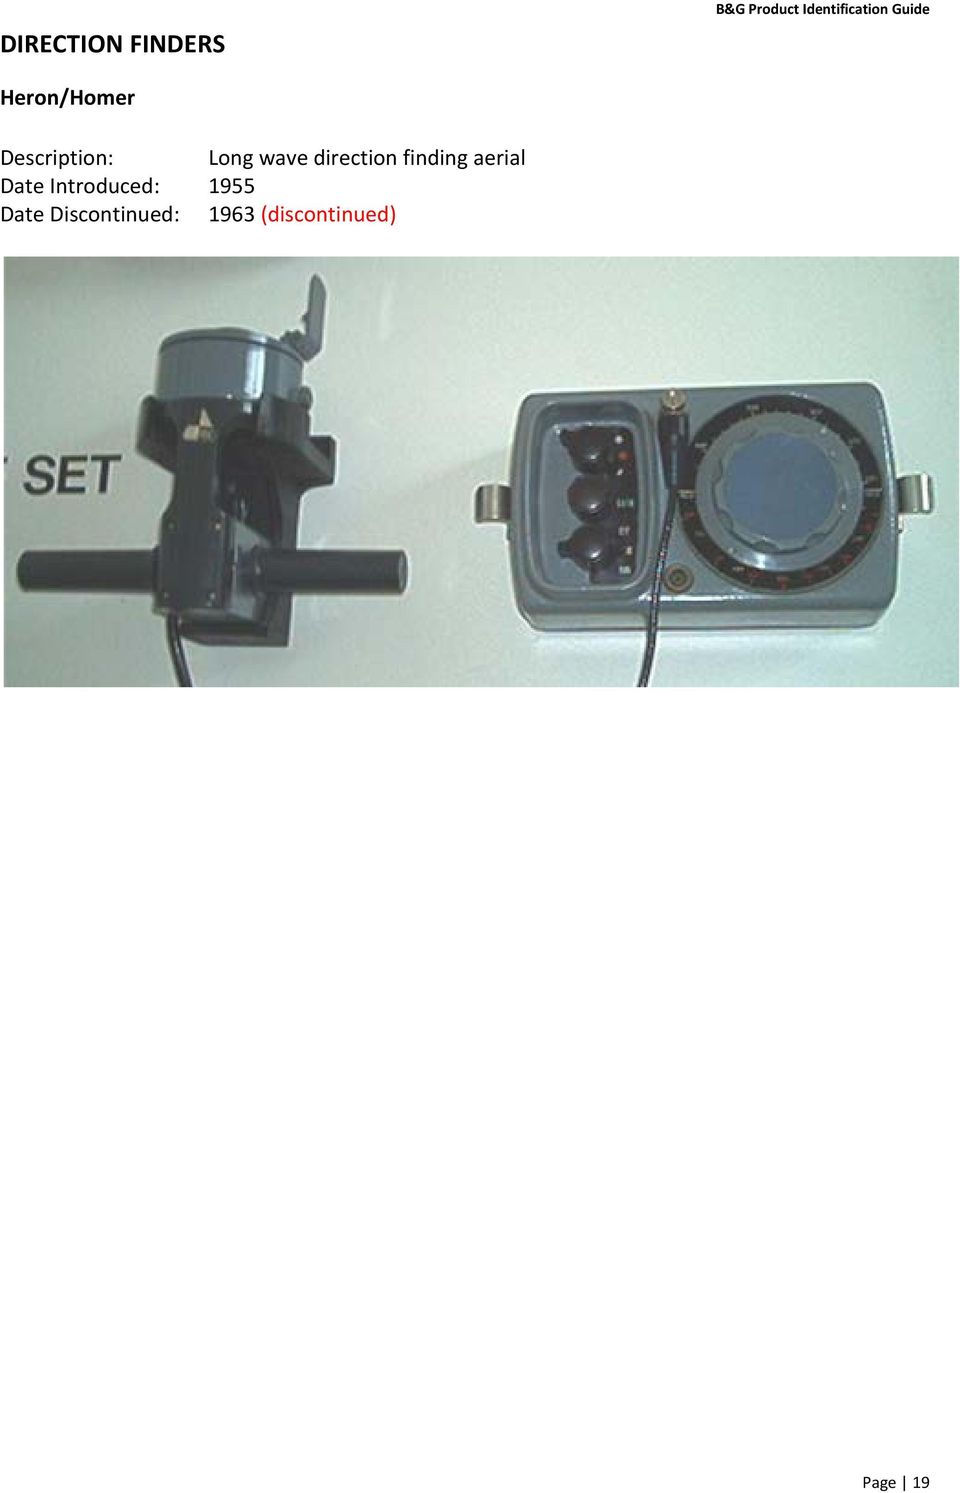 1987 Part Number: (discontinued) Sensor viewed from the base showing